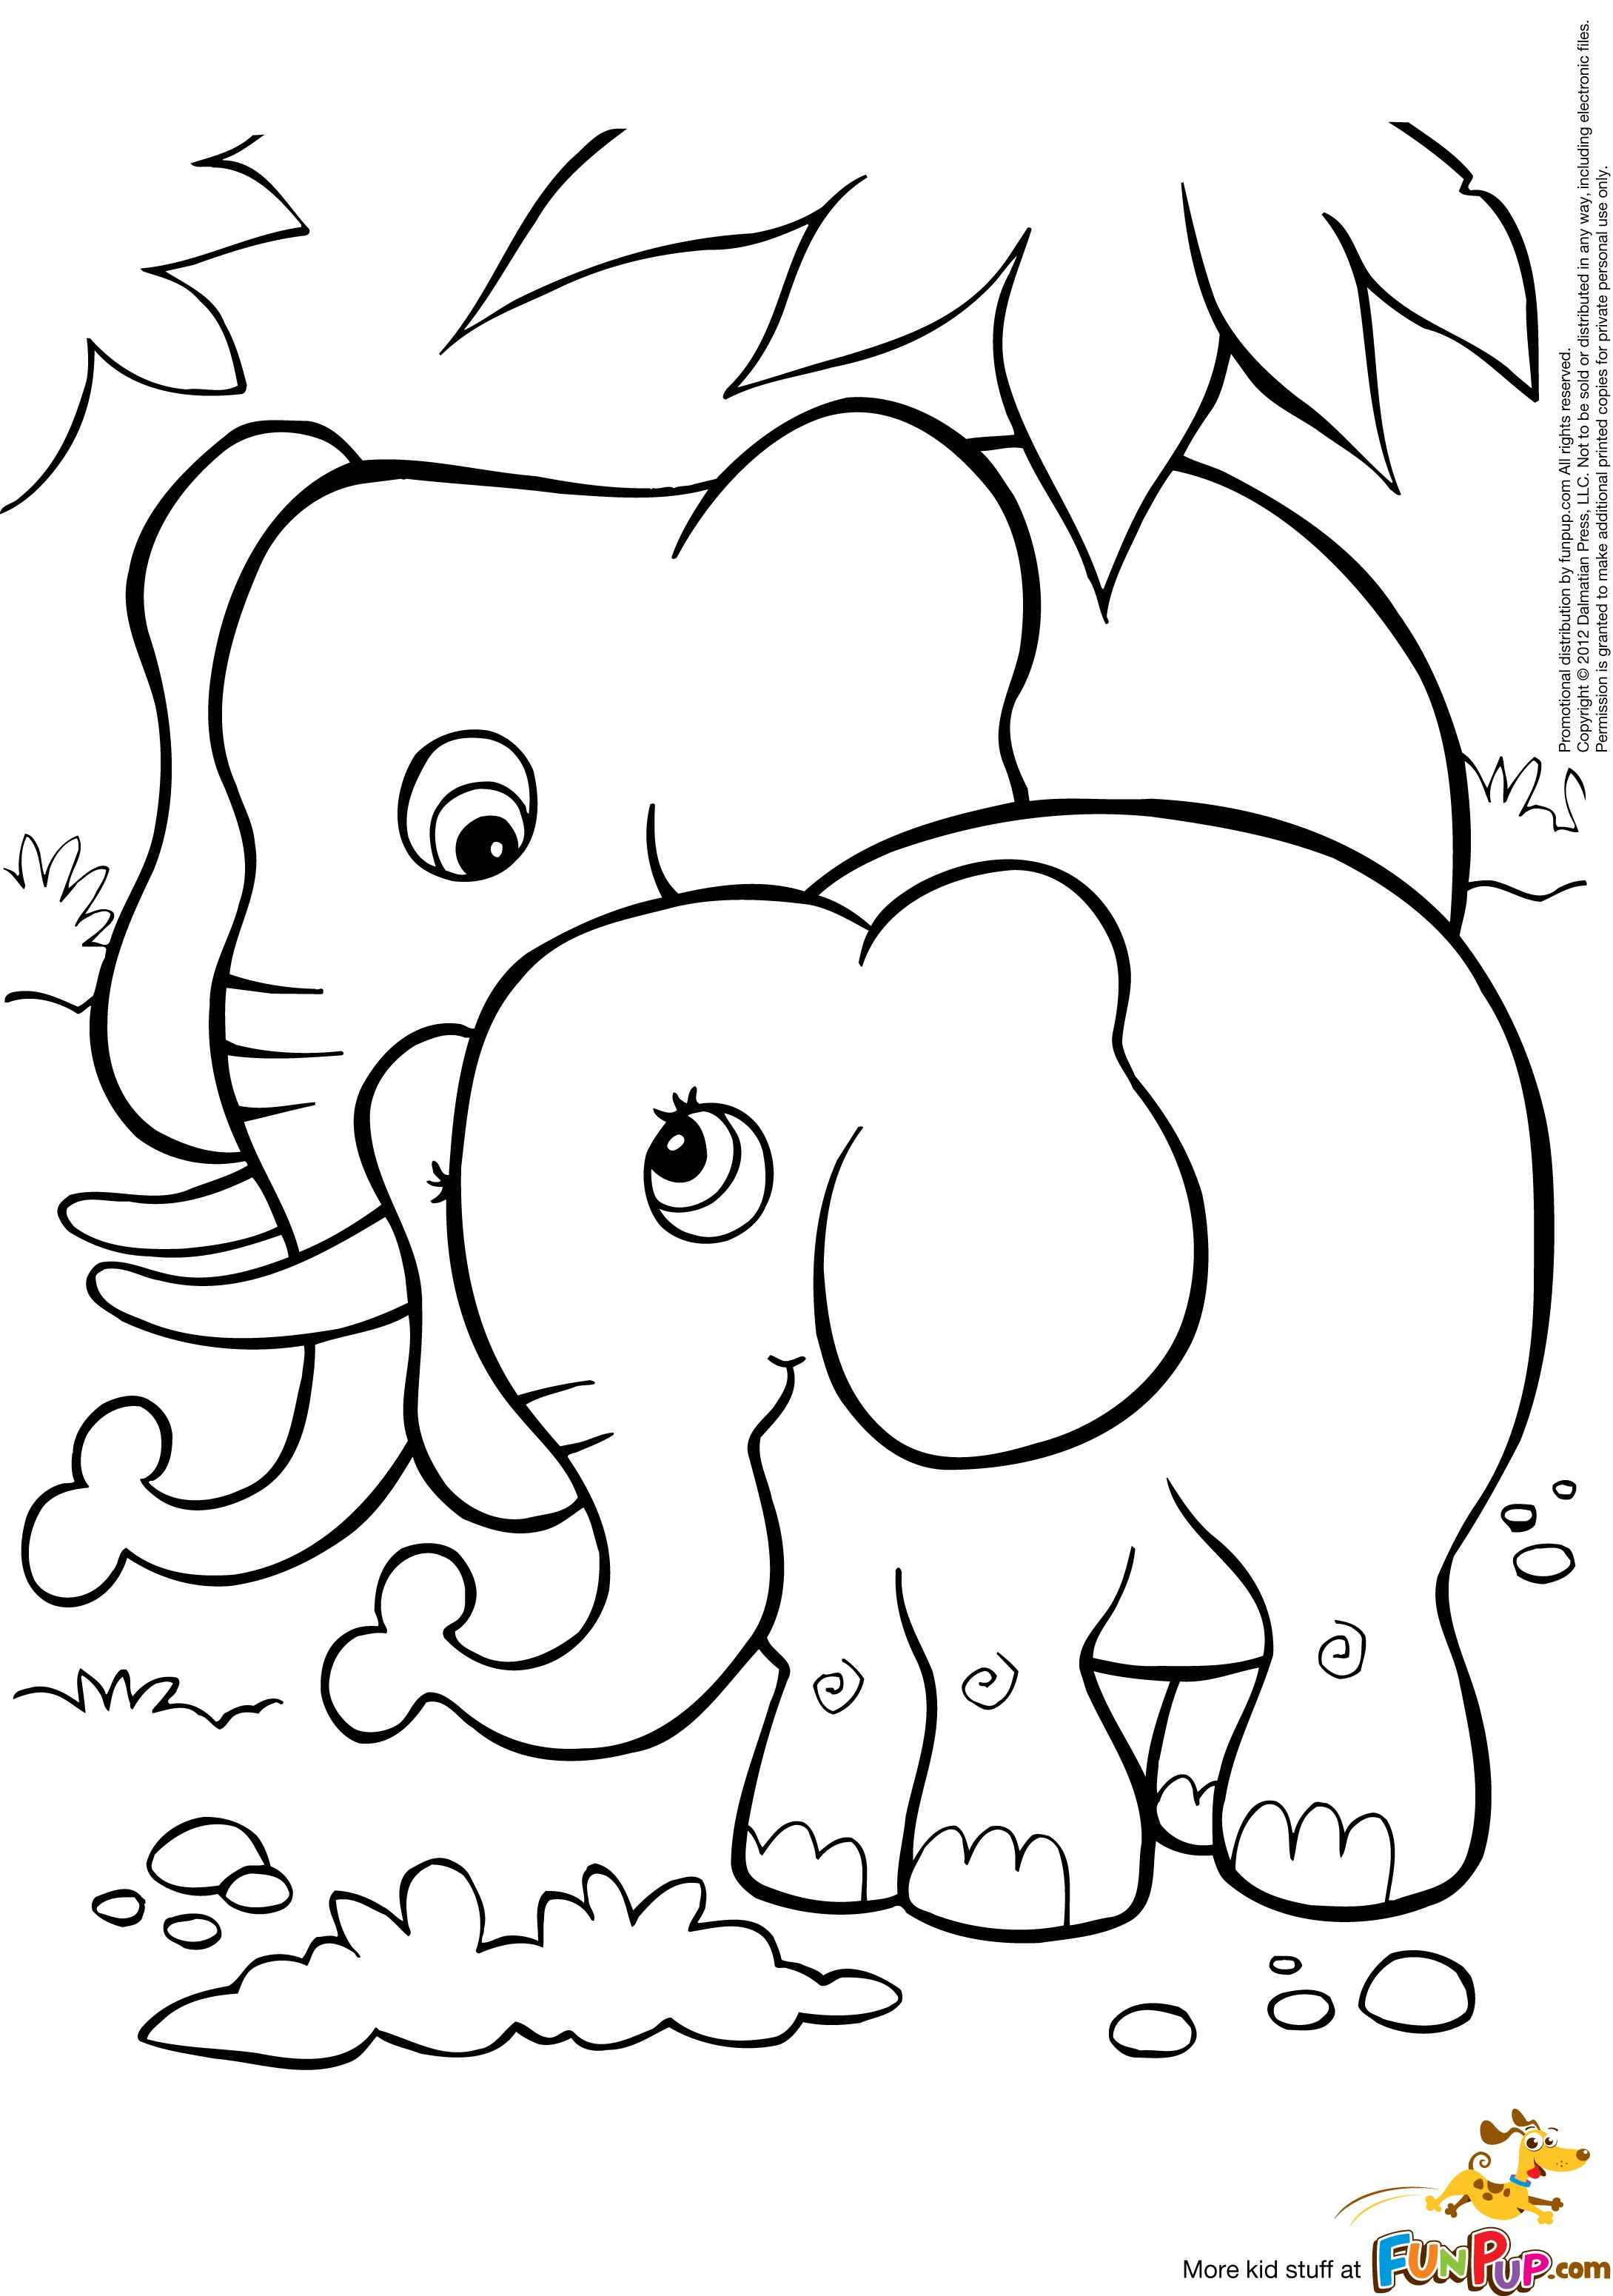 free baby elephant coloring pages